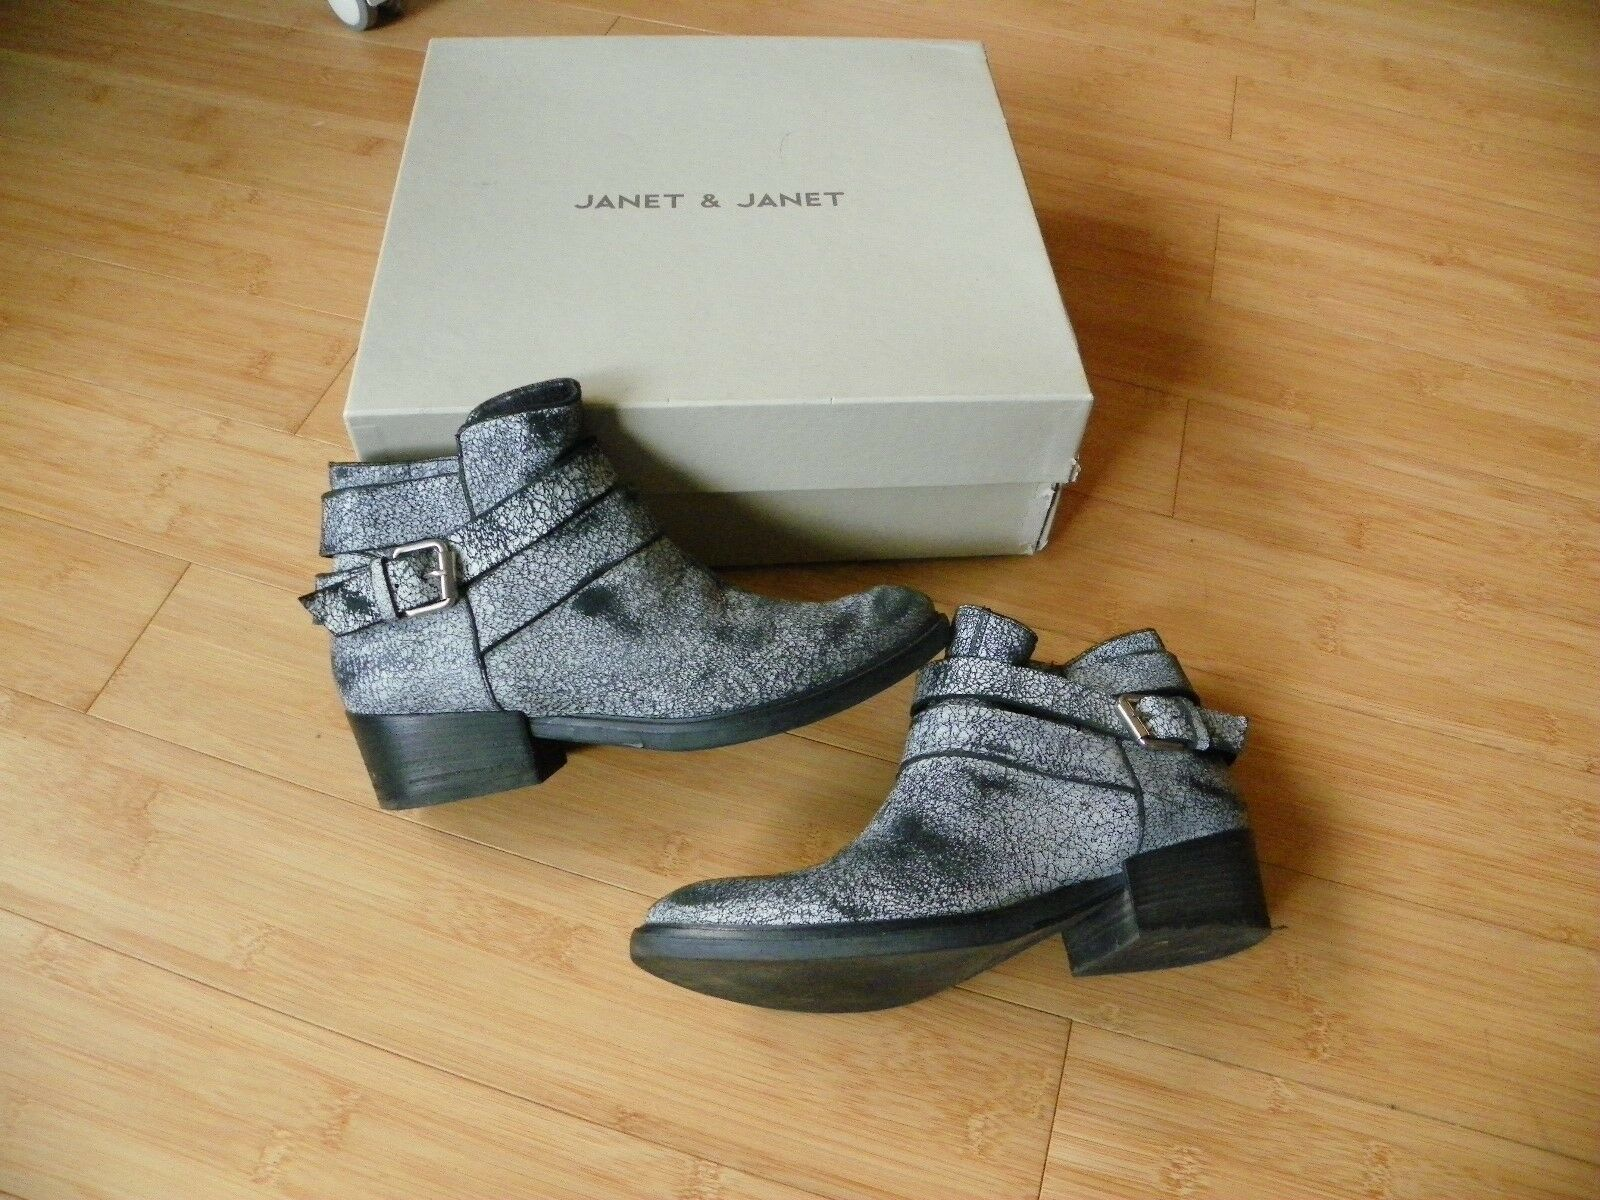 c7fa92c374e525 Bottines / Boots - Janet & Janet - Pointure 36 - | 2019 01ccd0 ...